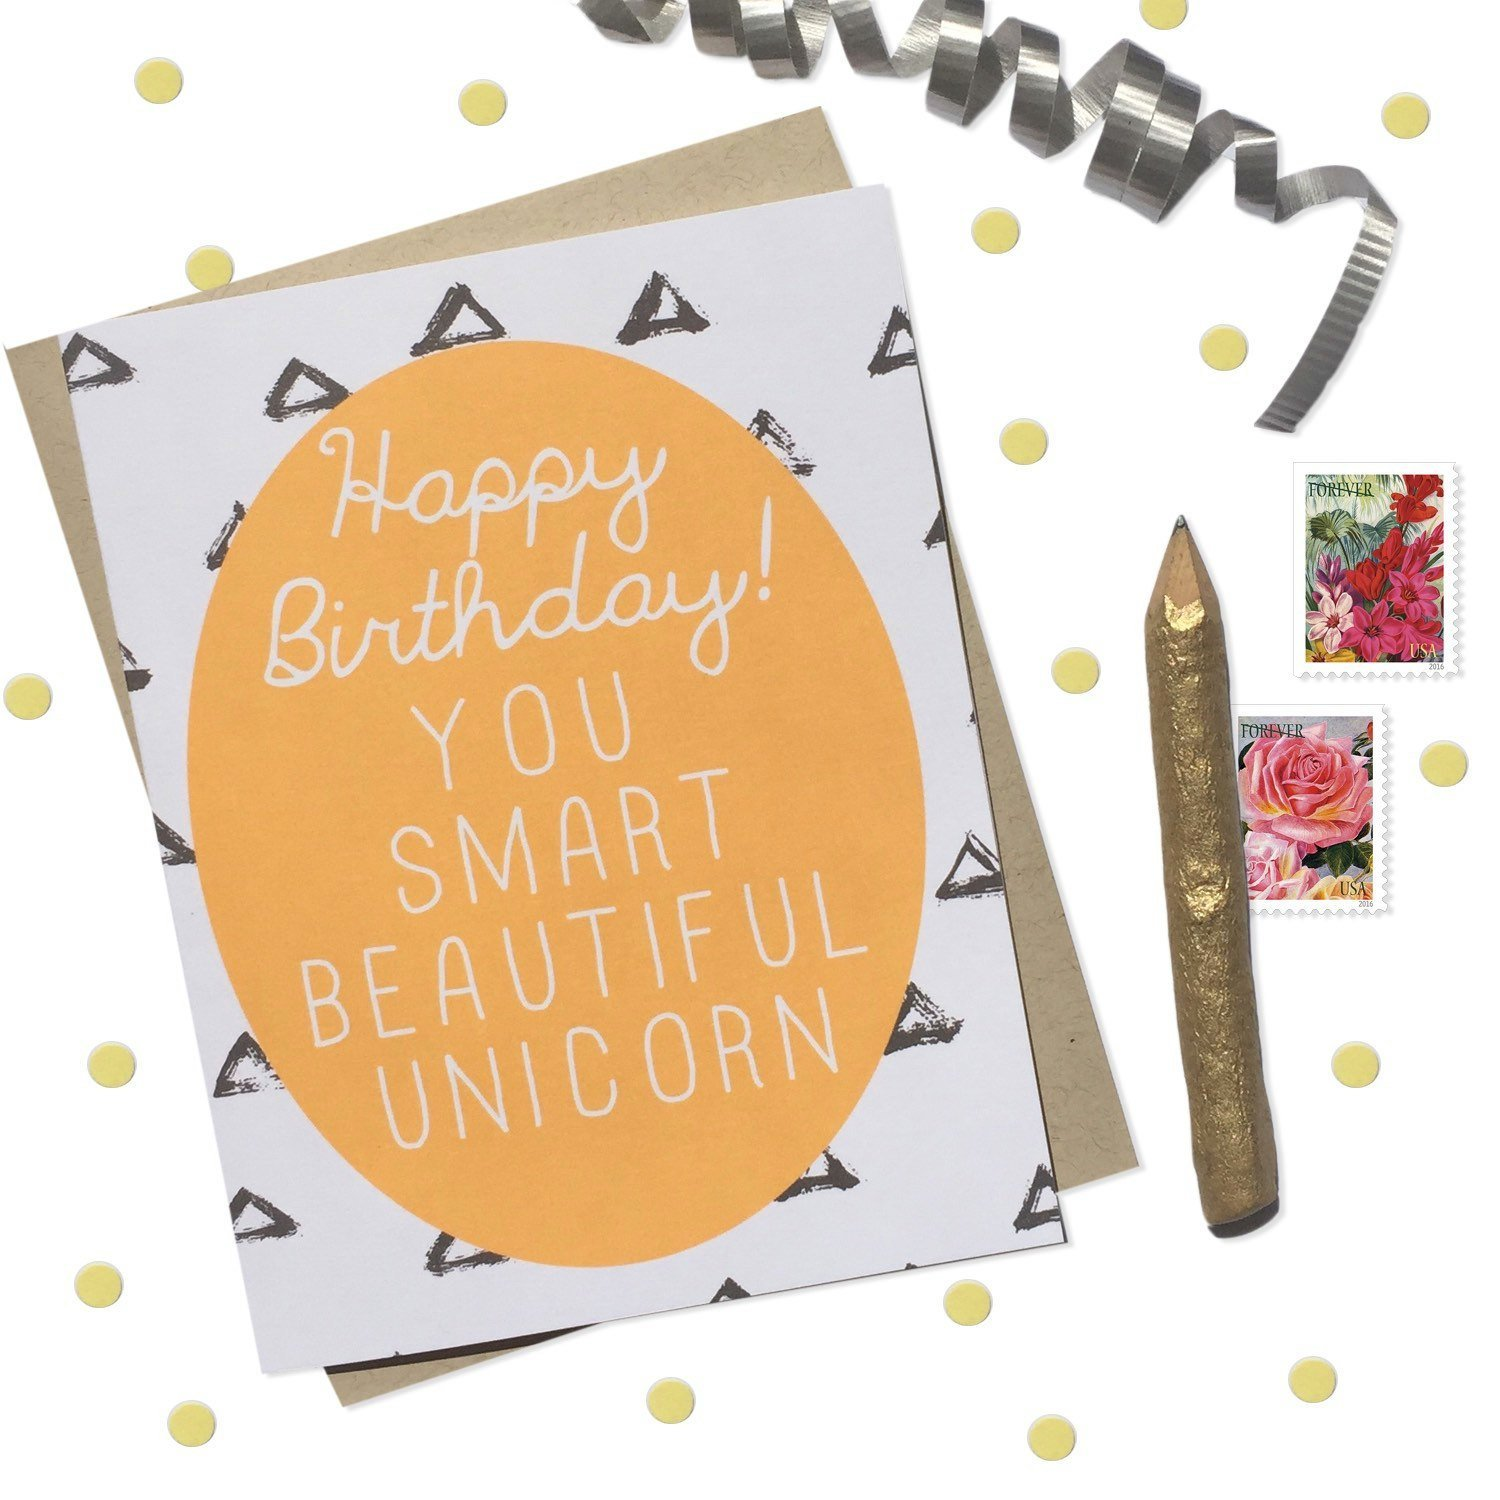 Birthday Card with Optional Customized Message